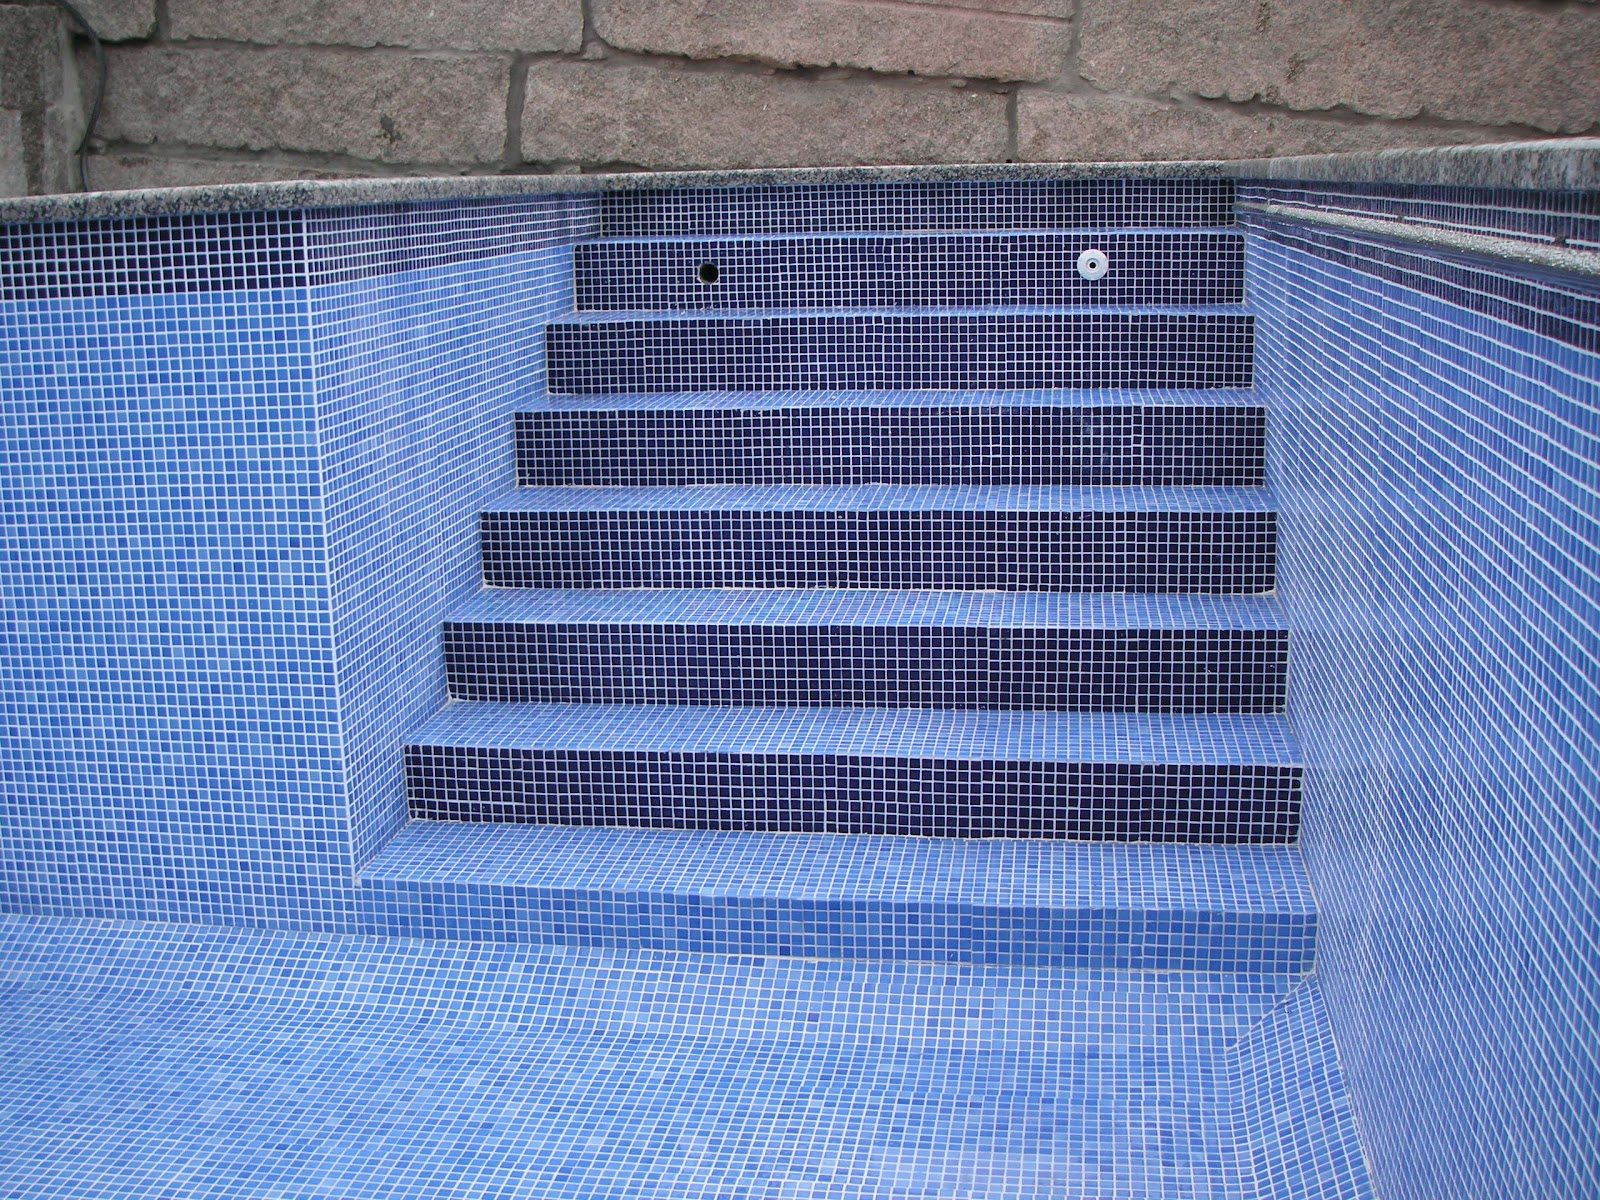 Escaleras Piscinas Piscinas Con Escaleras De Obra Simple Piscinas De Obra With